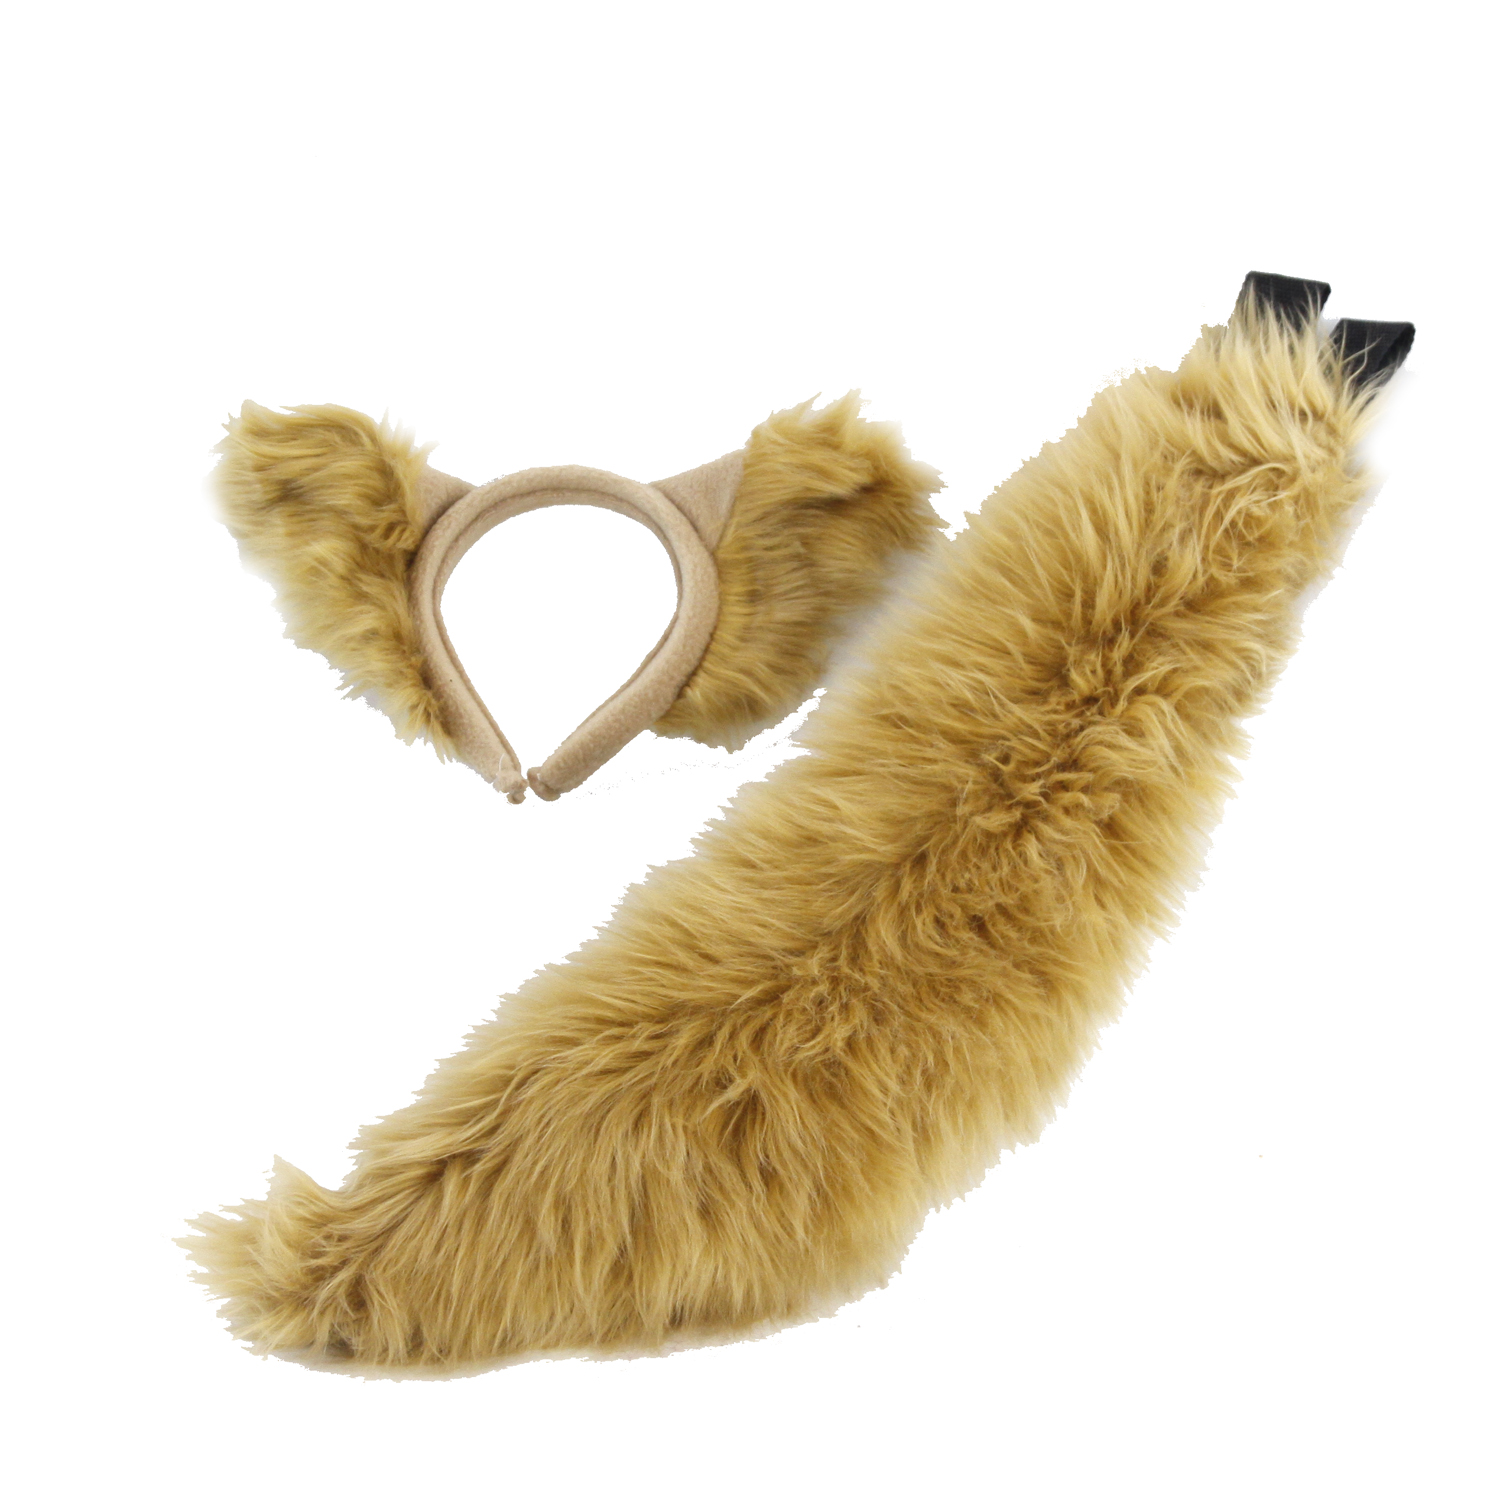 Classic Wolf Ears & Mini Tail Set